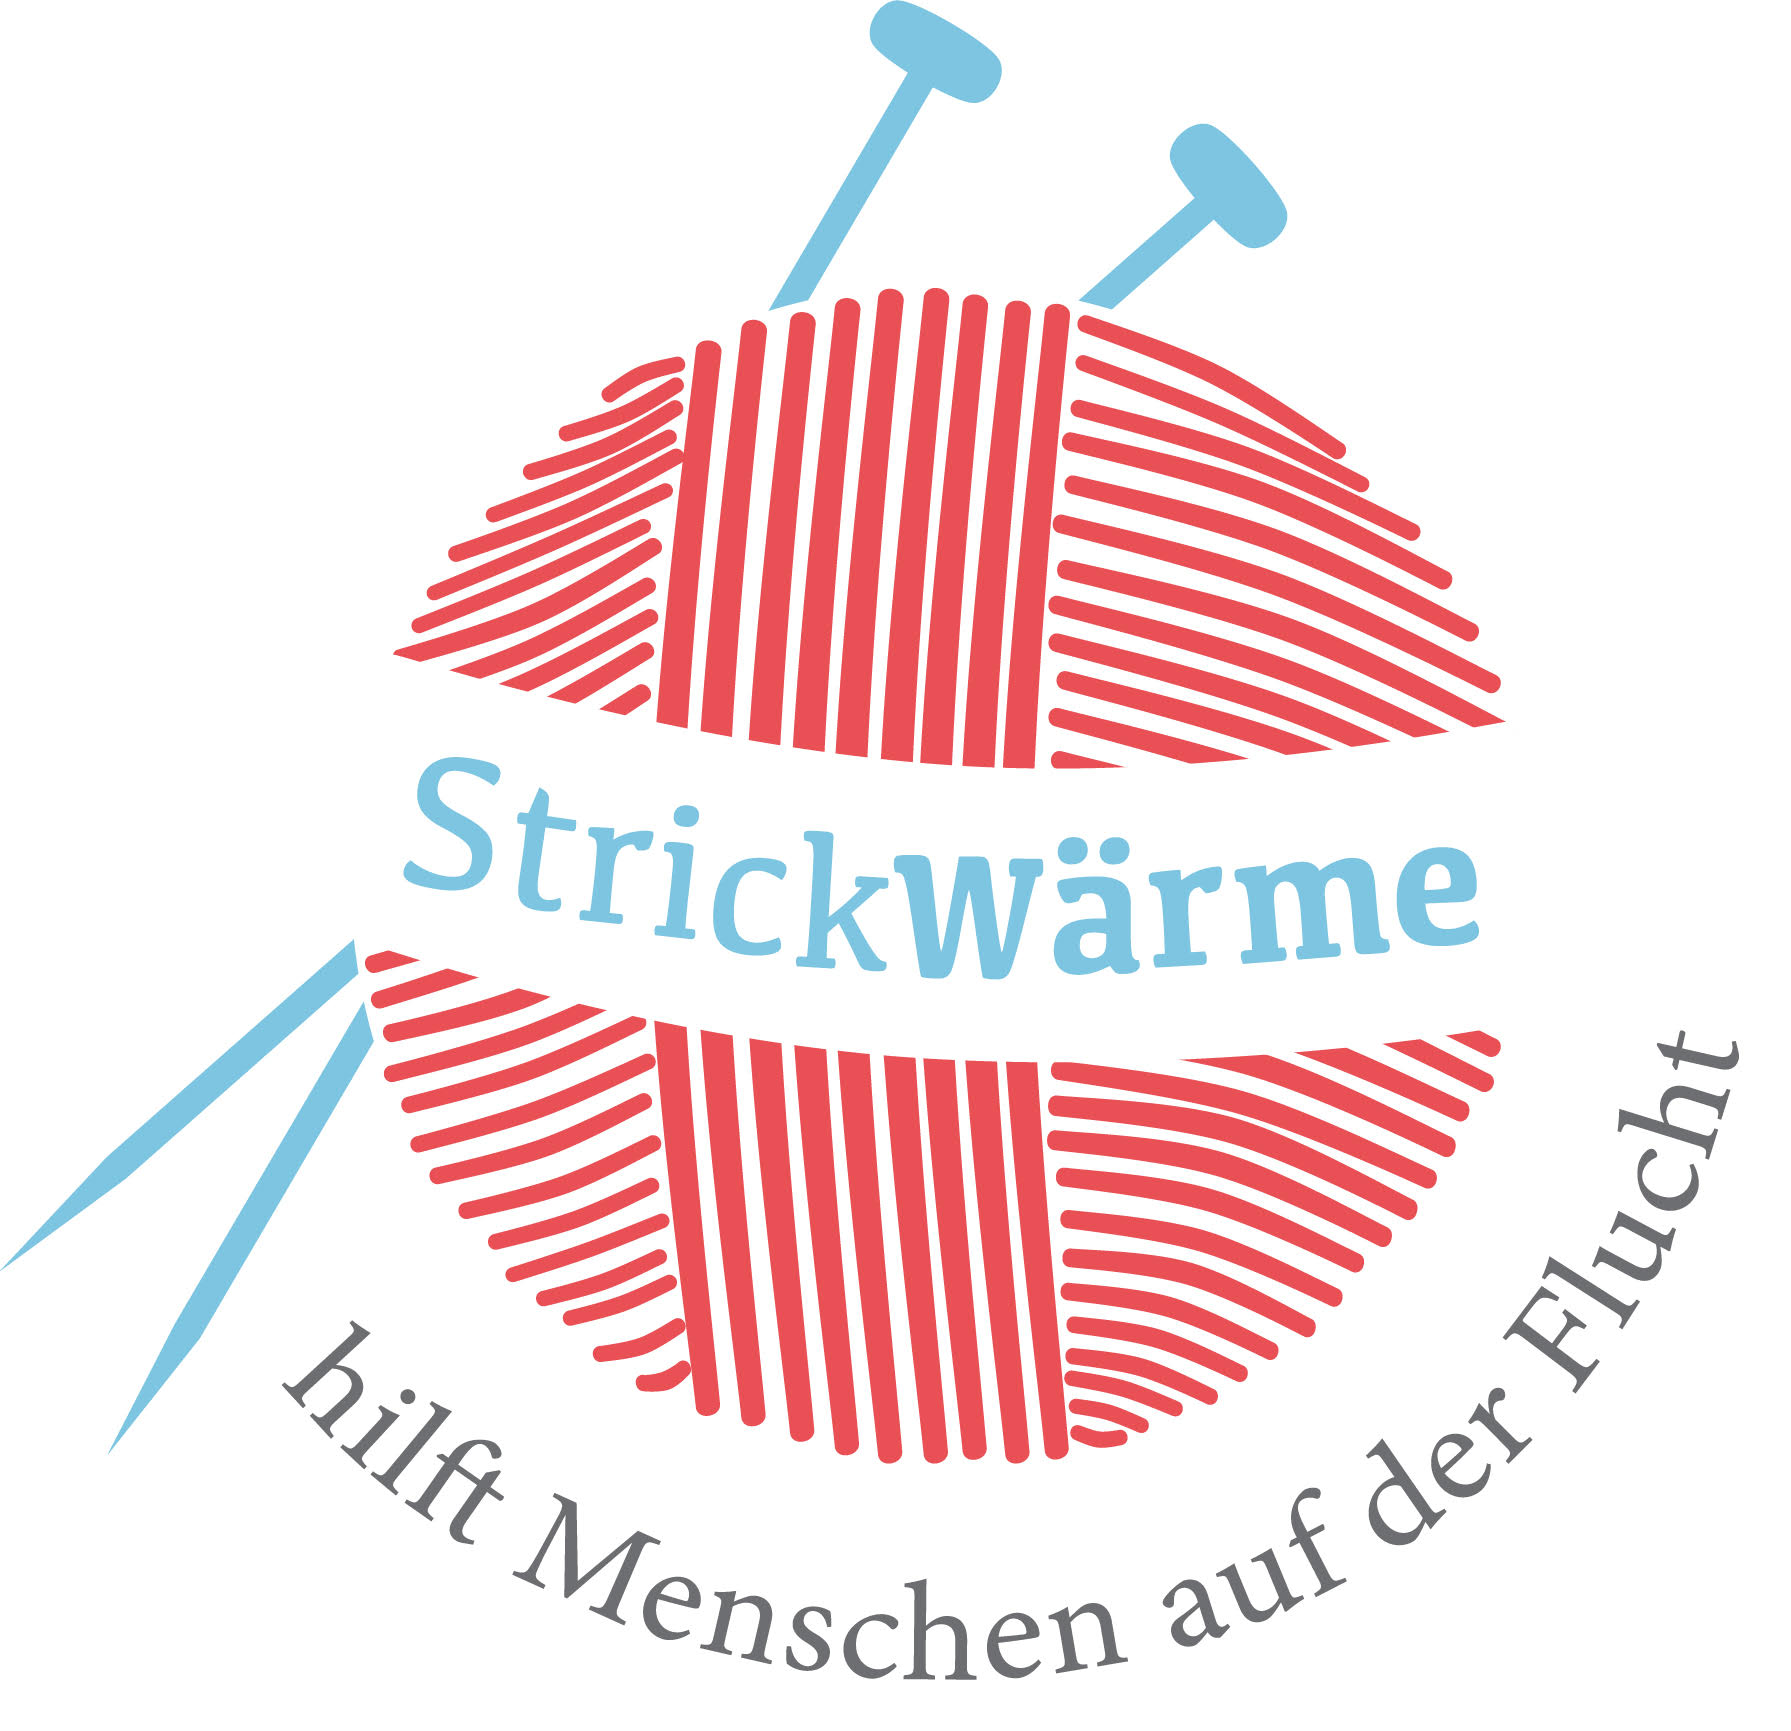 StrickWarme